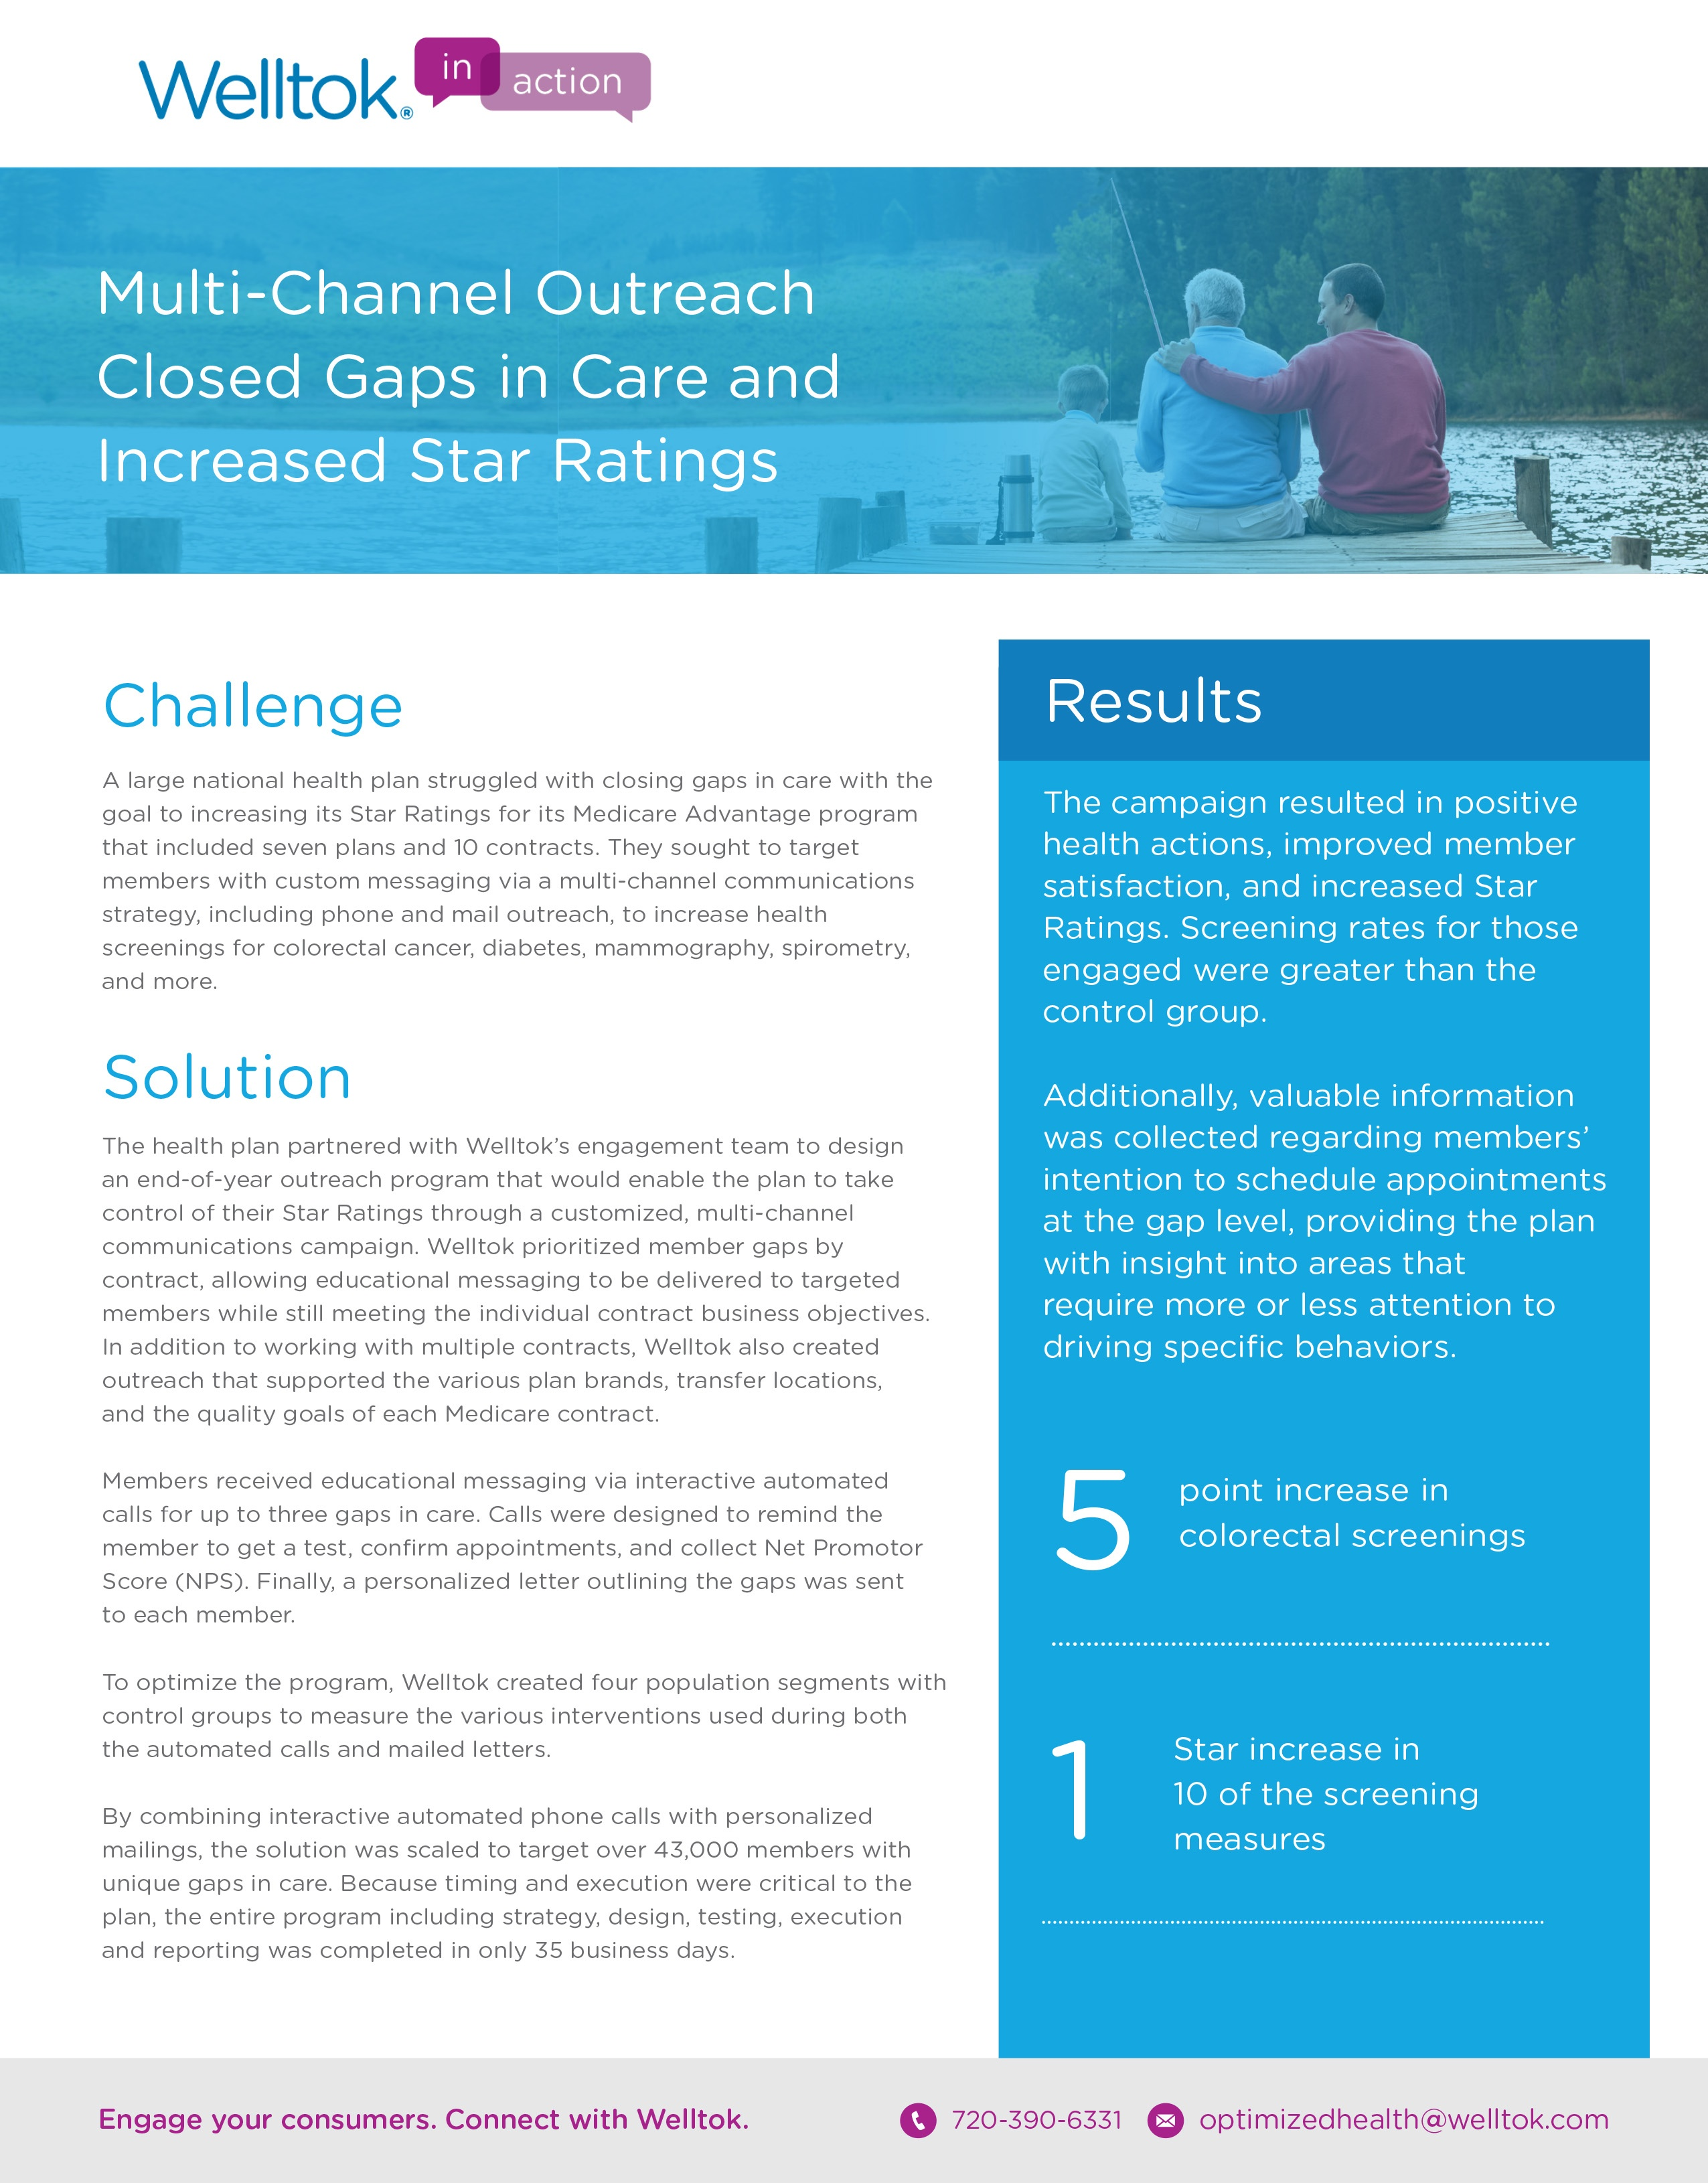 Multi-Channel Outreach Closed Gaps in Care and Increased Star Ratings_300dpi.jpg